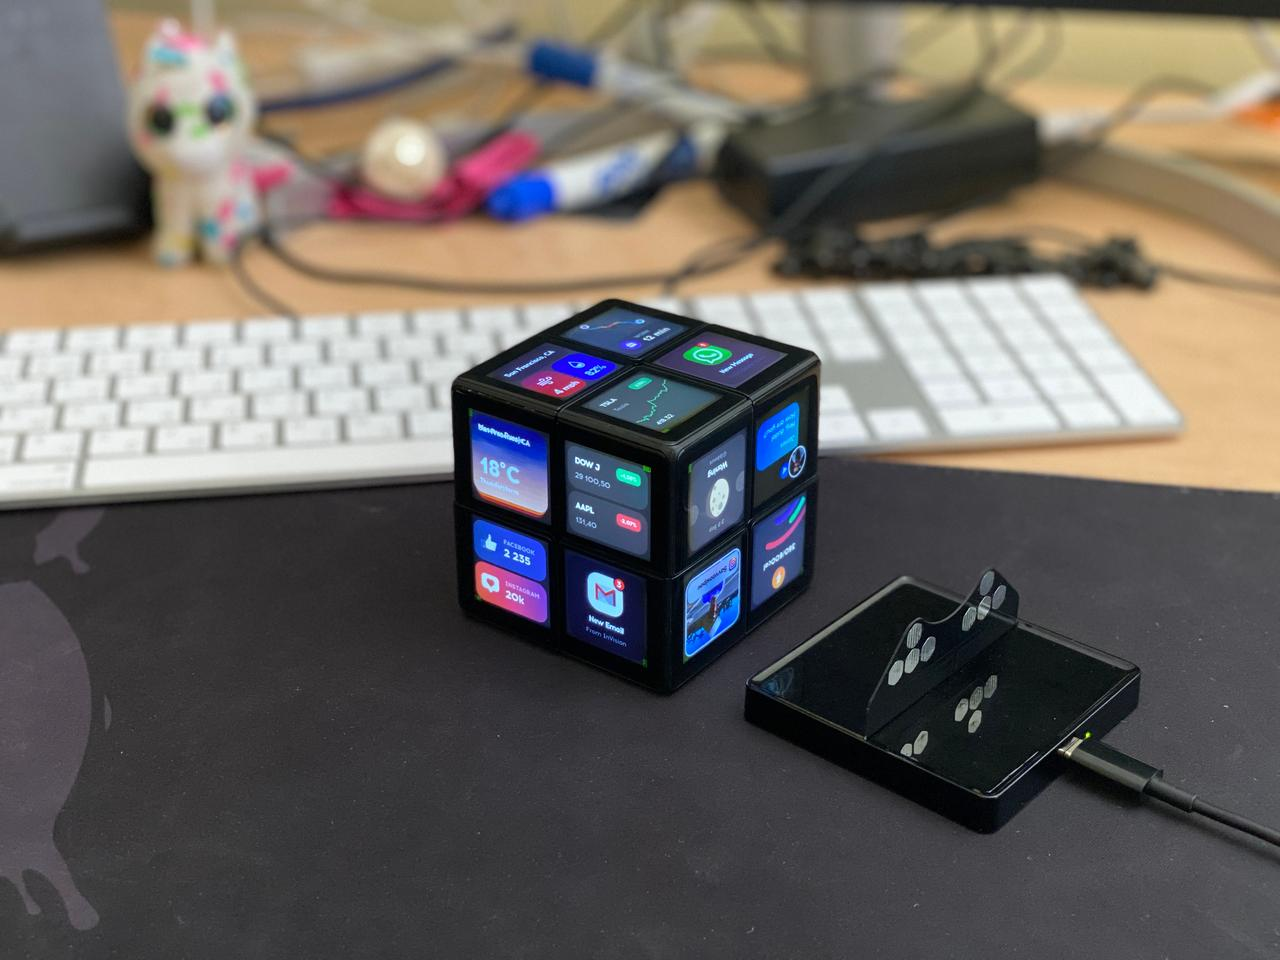 The WowCube can be used for more than just gaming